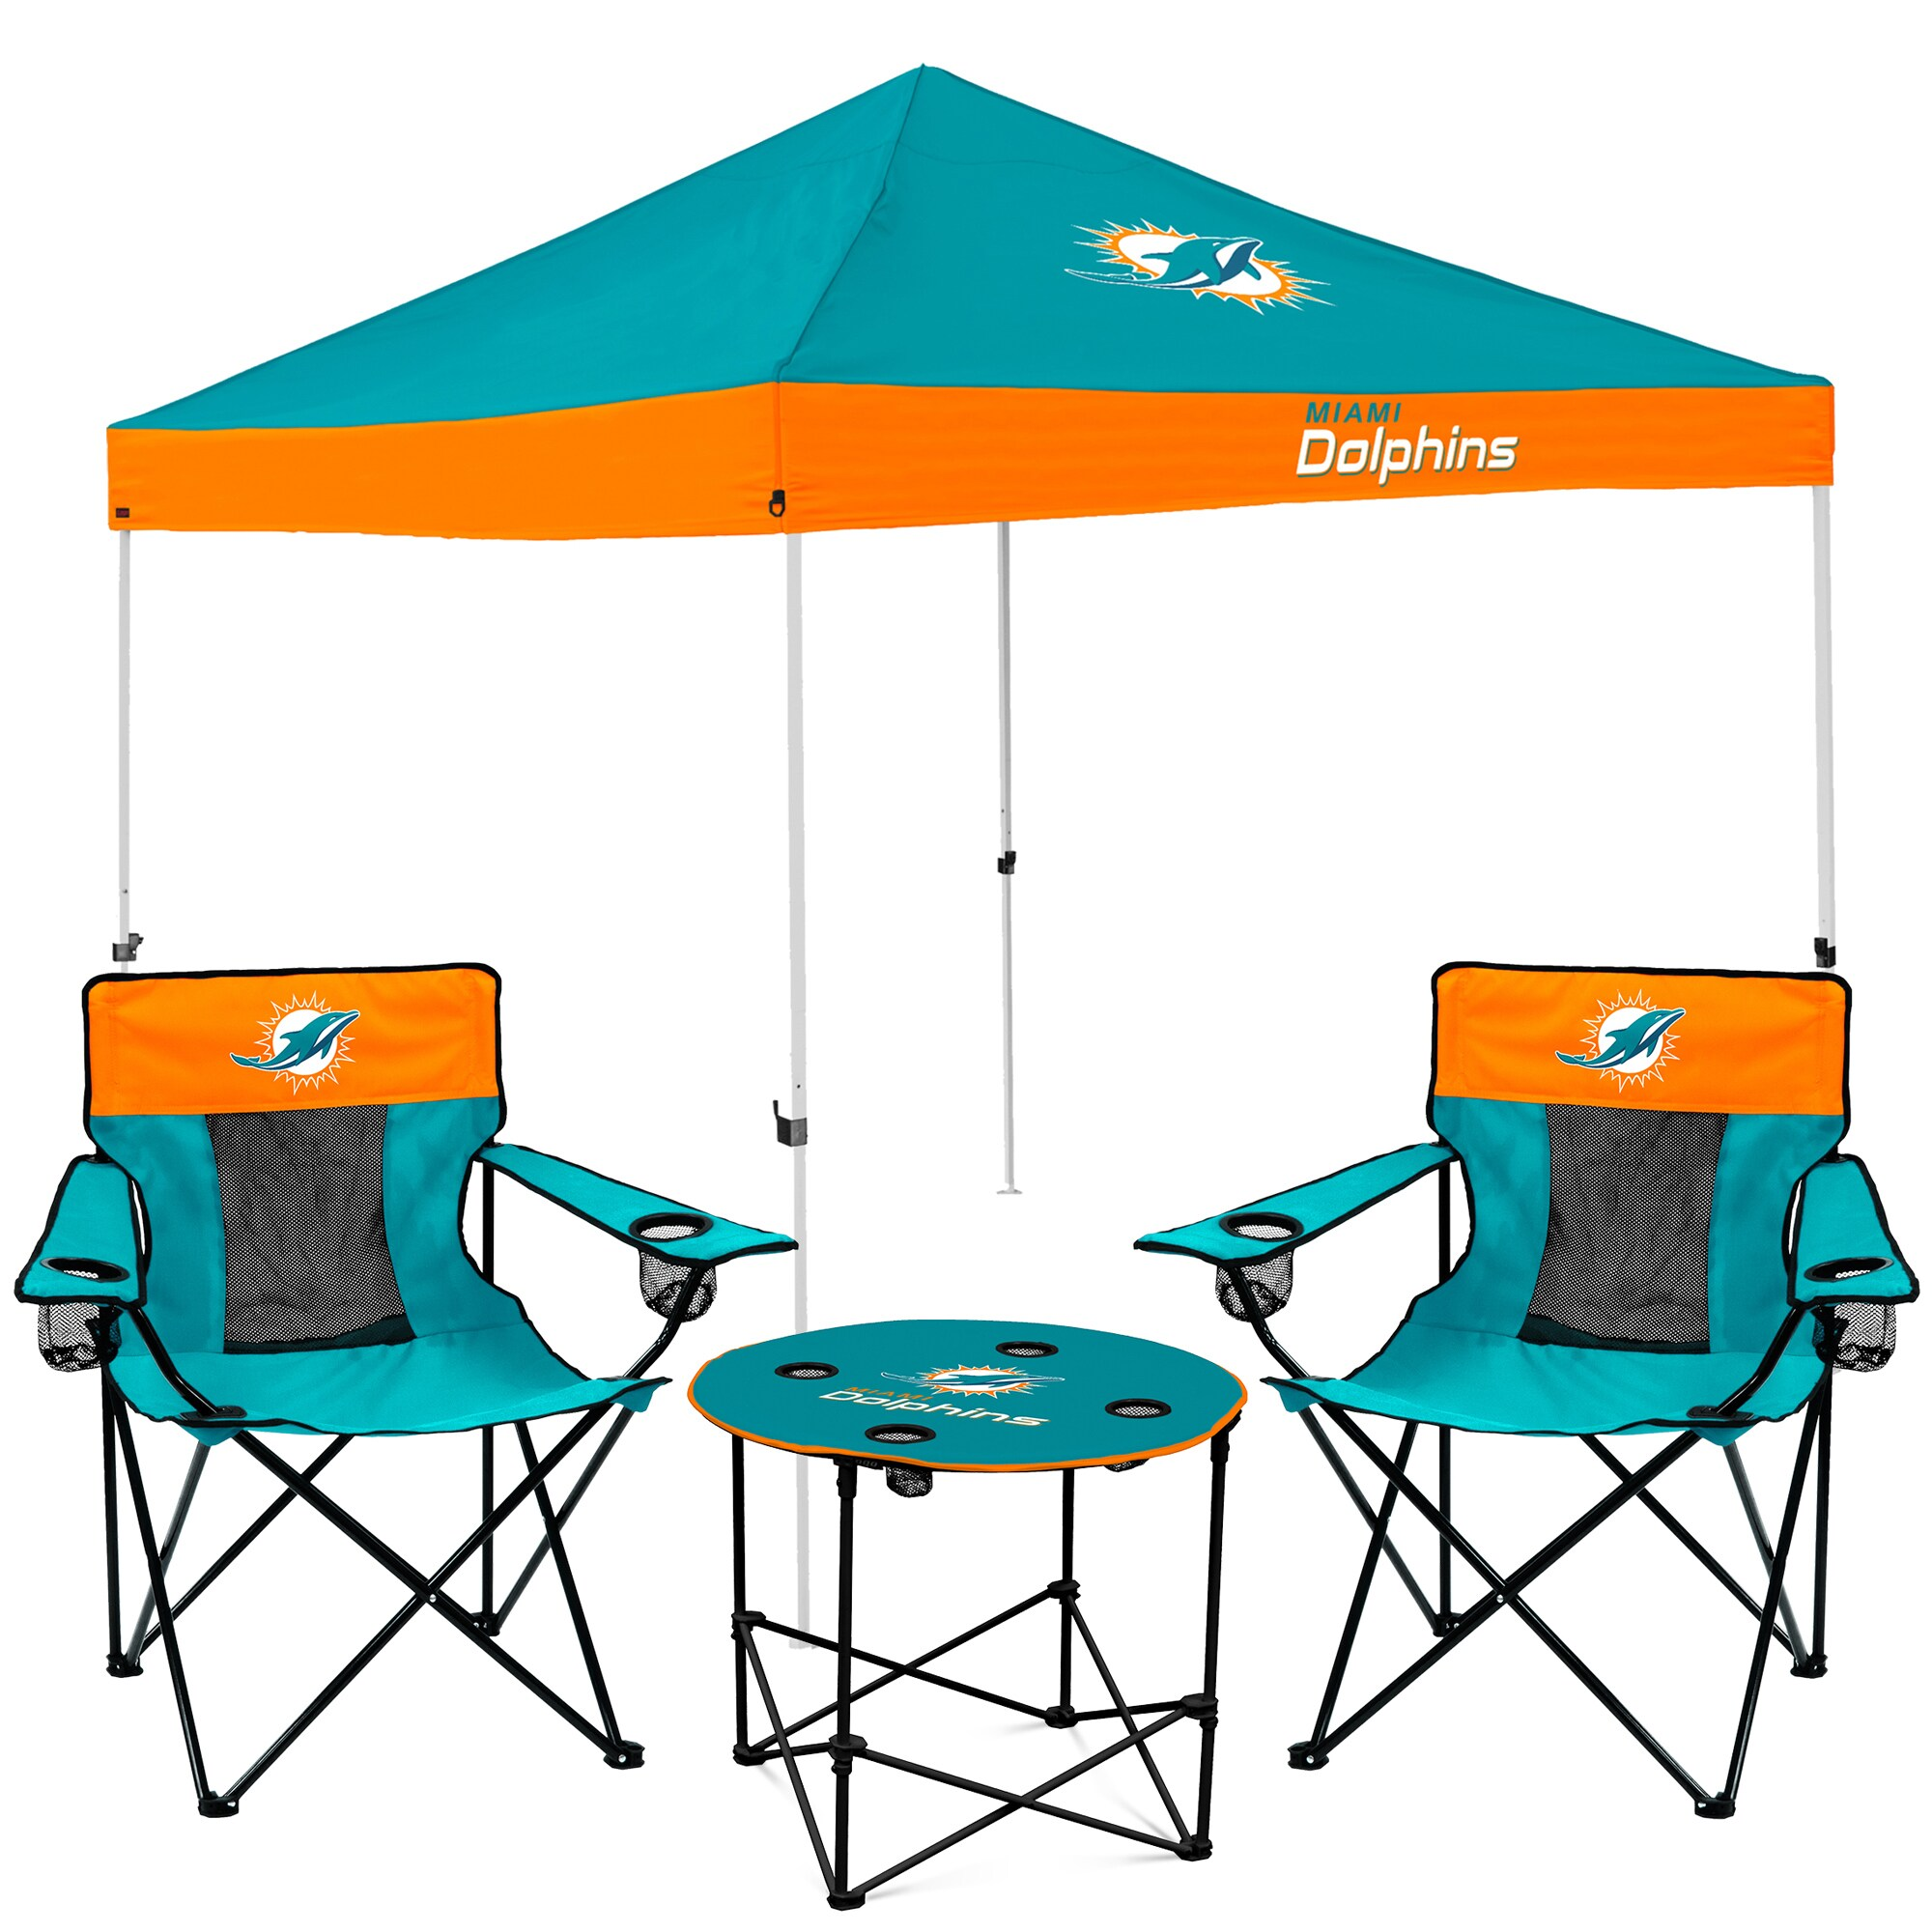 Miami Dolphins Tailgate Canopy Tent, Table, & Chairs Set